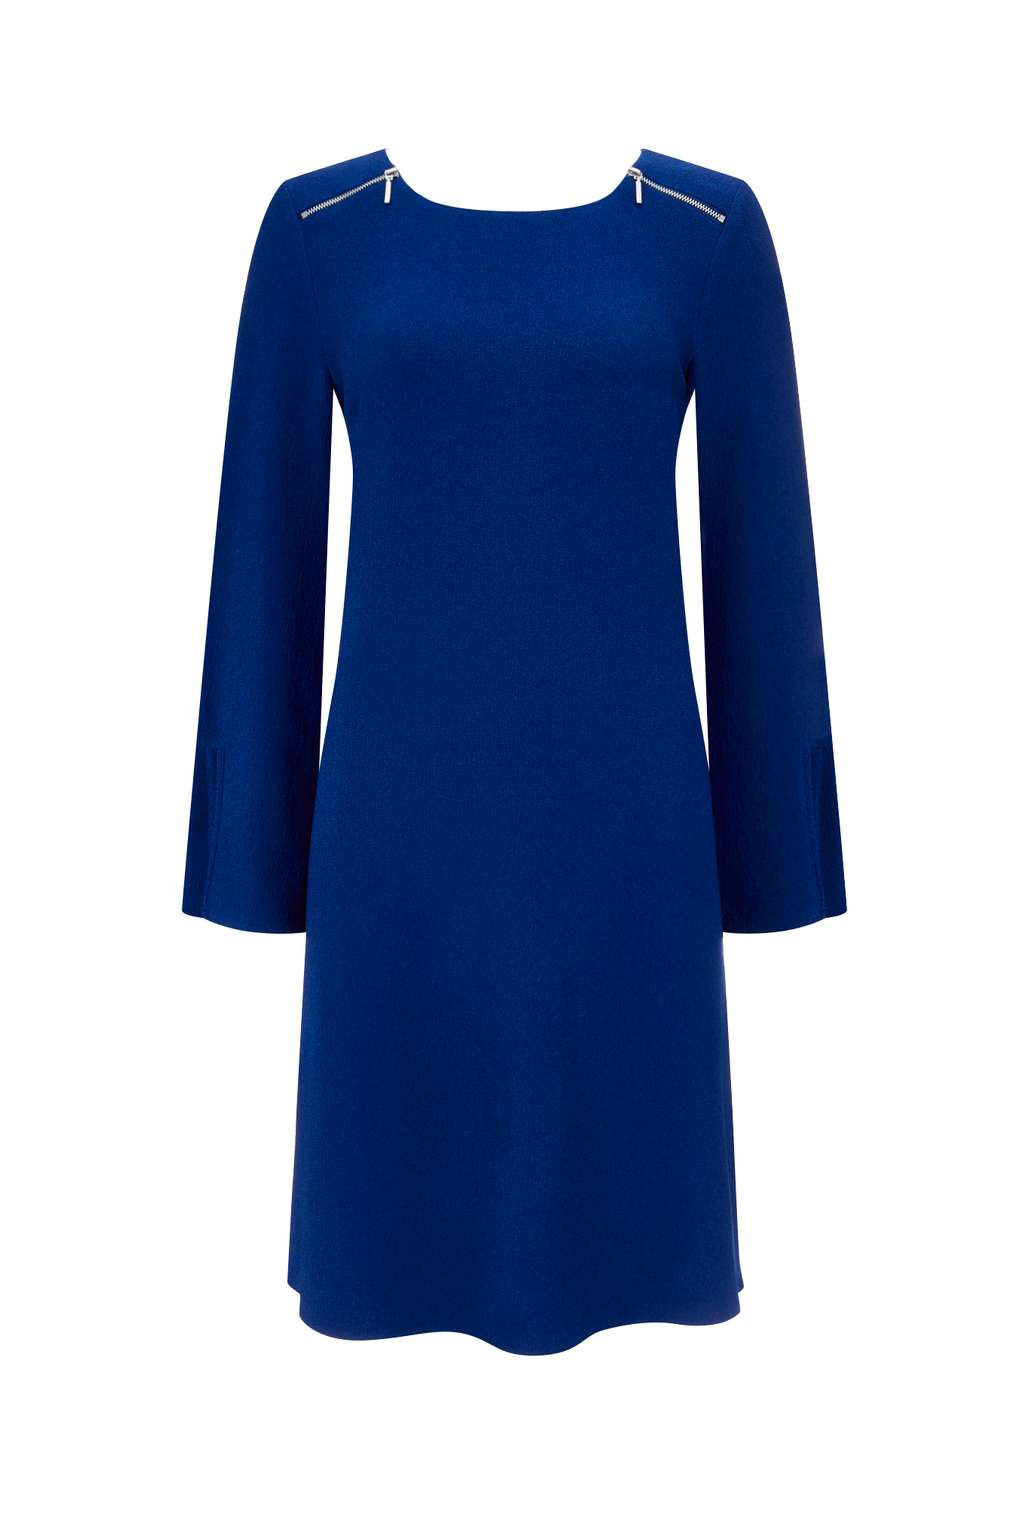 Blue Zip Shoulder Tunic Dress Was £35.00 Now £25.00Click to visit Wallis